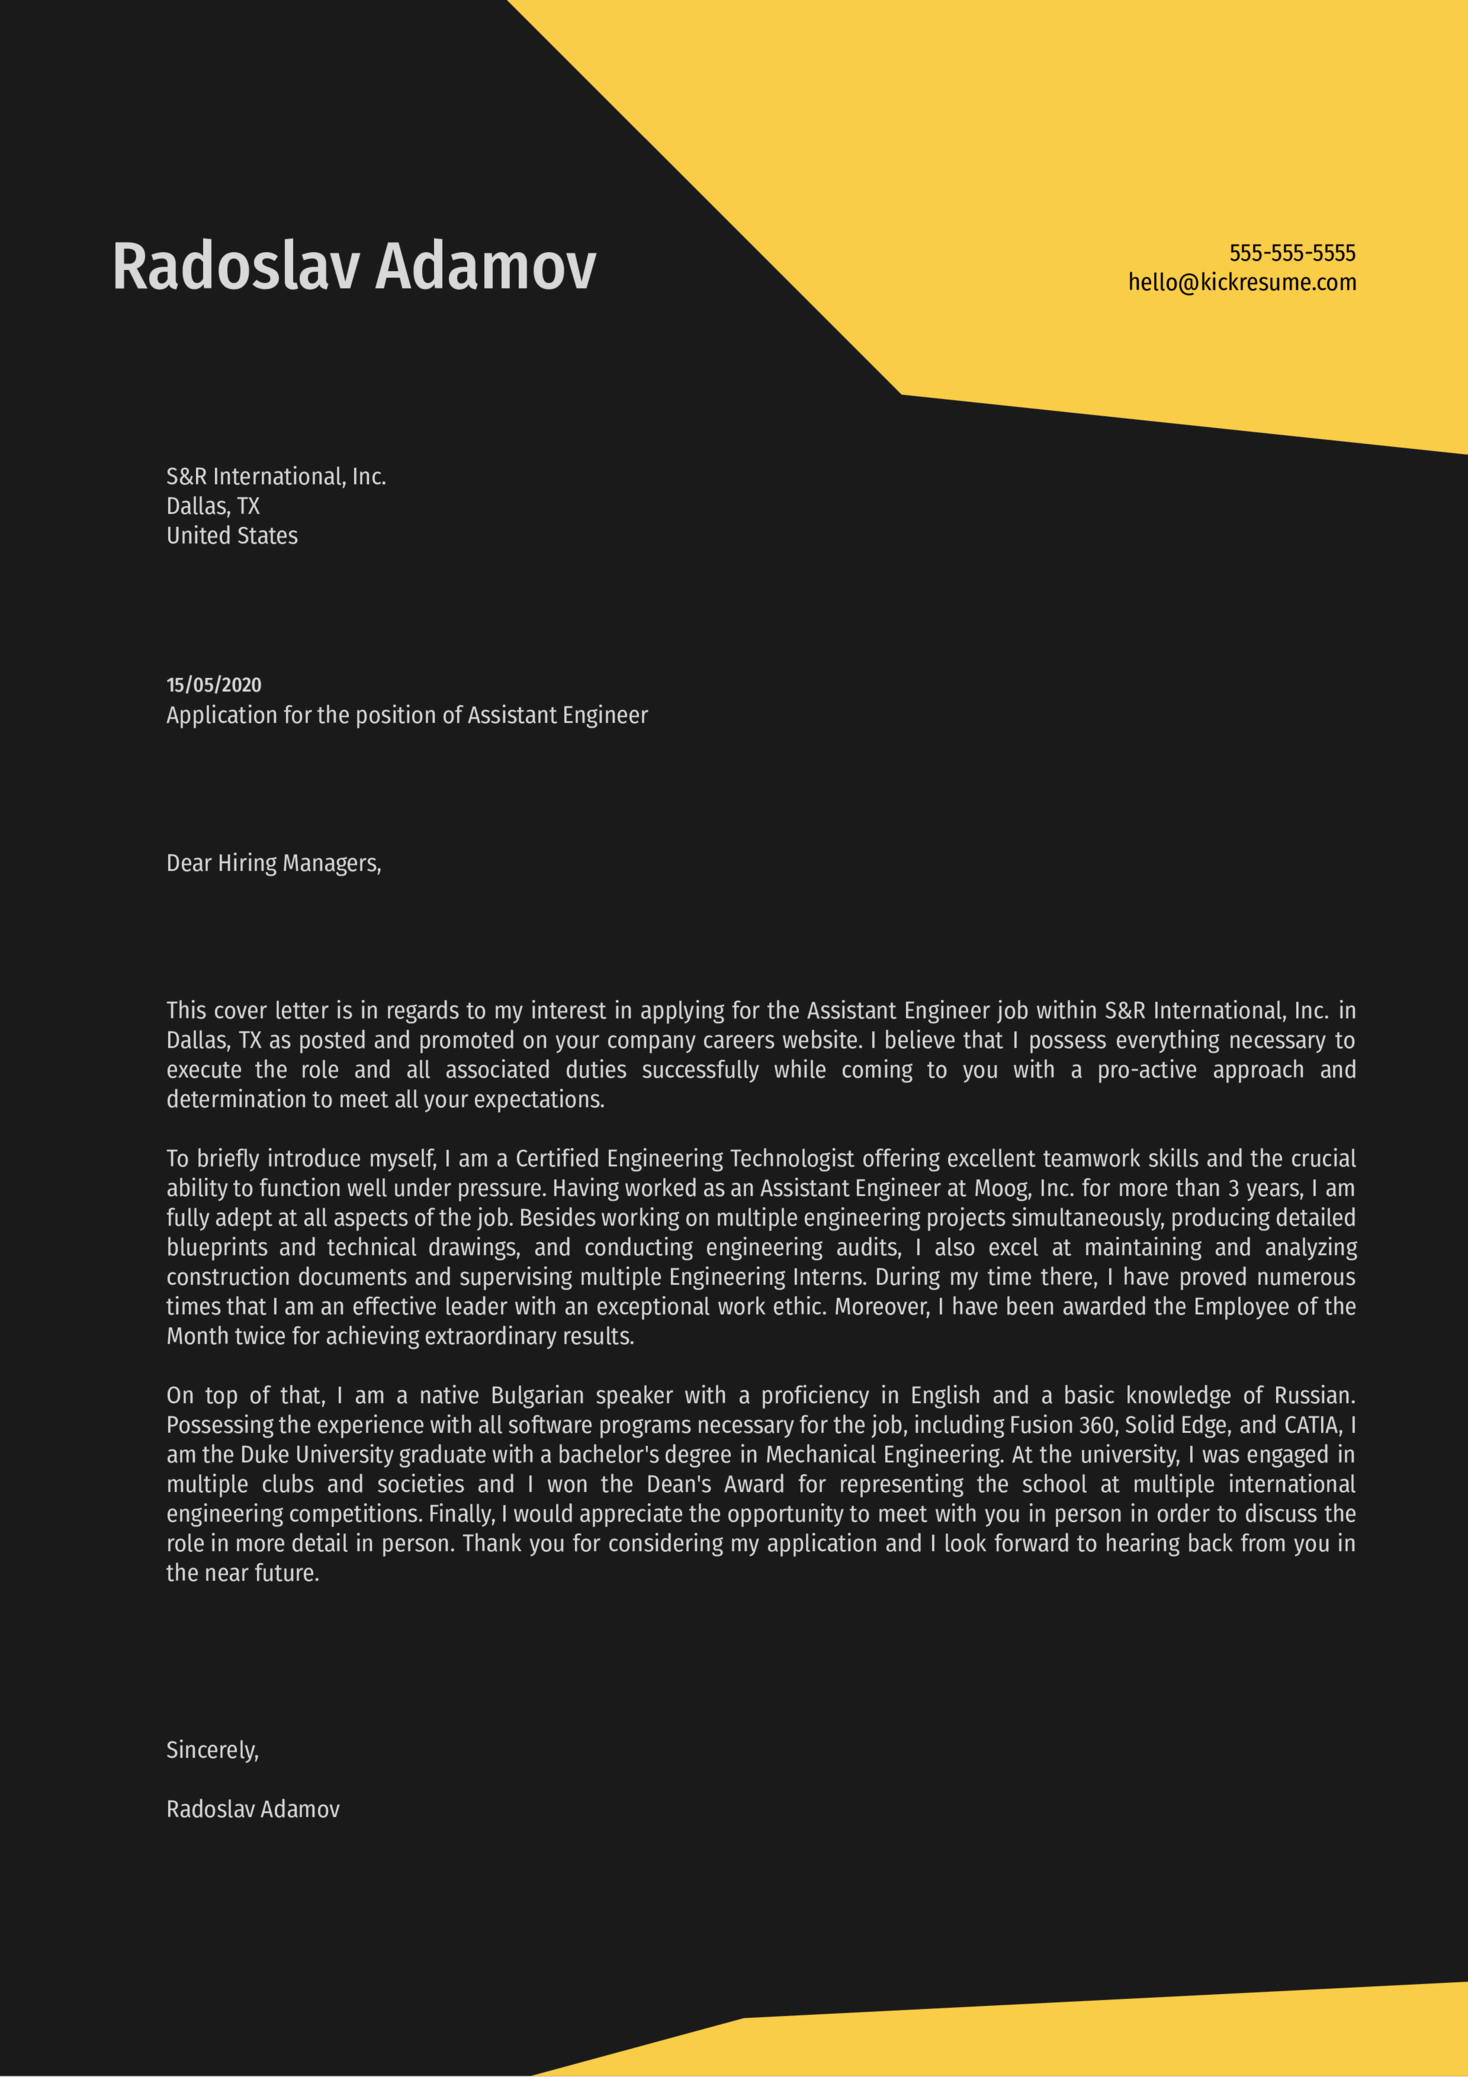 Assistant Engineer Cover Letter Sample